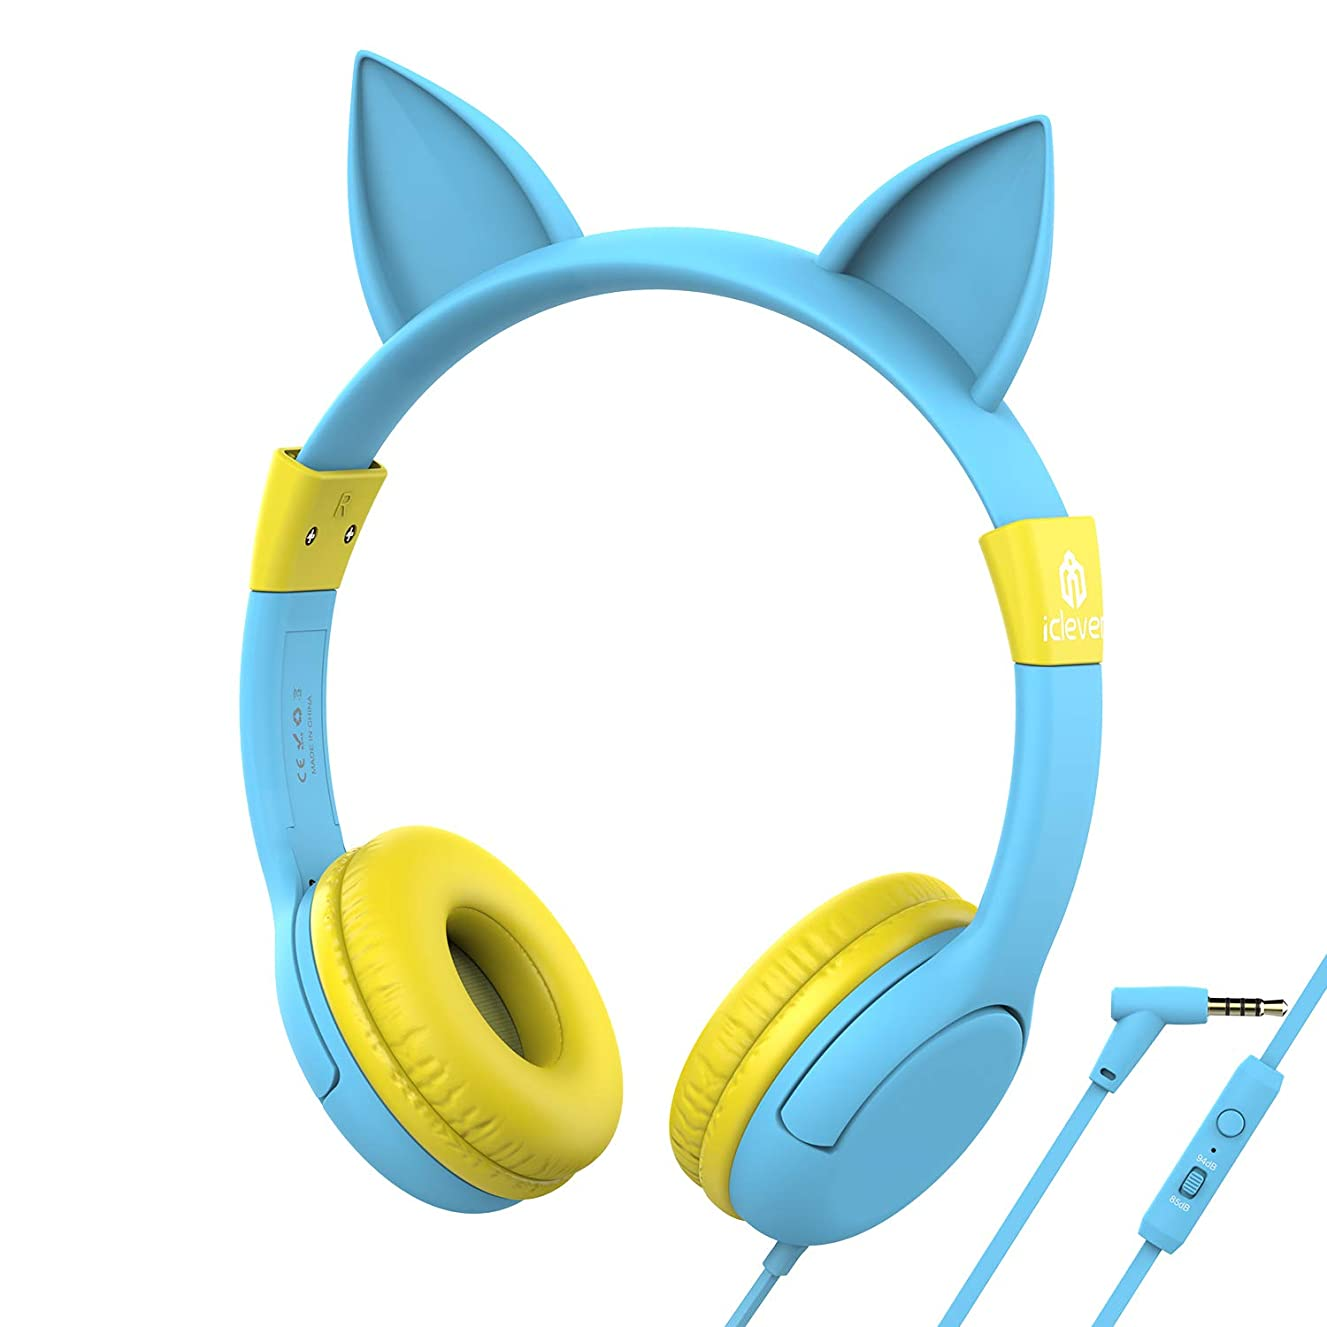 iClever Kids Headphones - Cat-Inspired Wired On-Ear Headphones for Kids, Adjustable 85/94dB Volume Control, Food Grade Silicone, Lightweight - Childrens Headphones with Microphone, Blue/Yellow